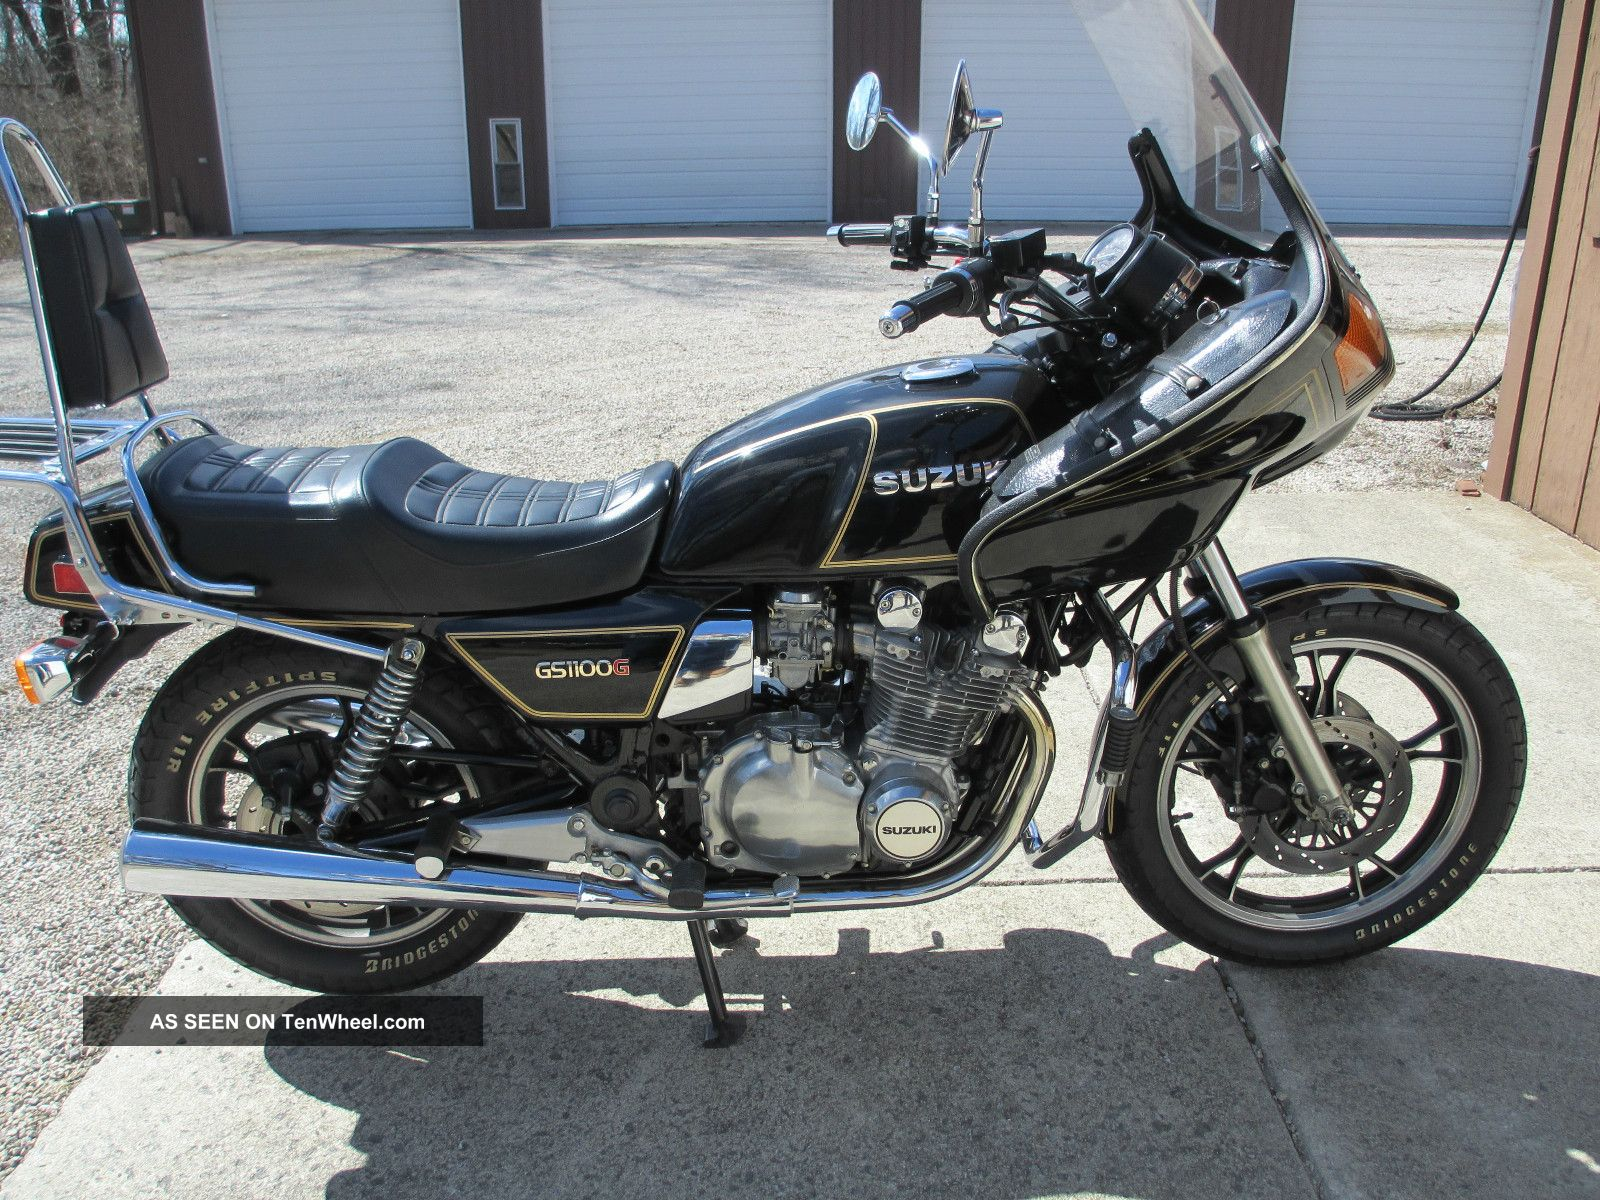 1982 Suzuki Gs1100g GS photo